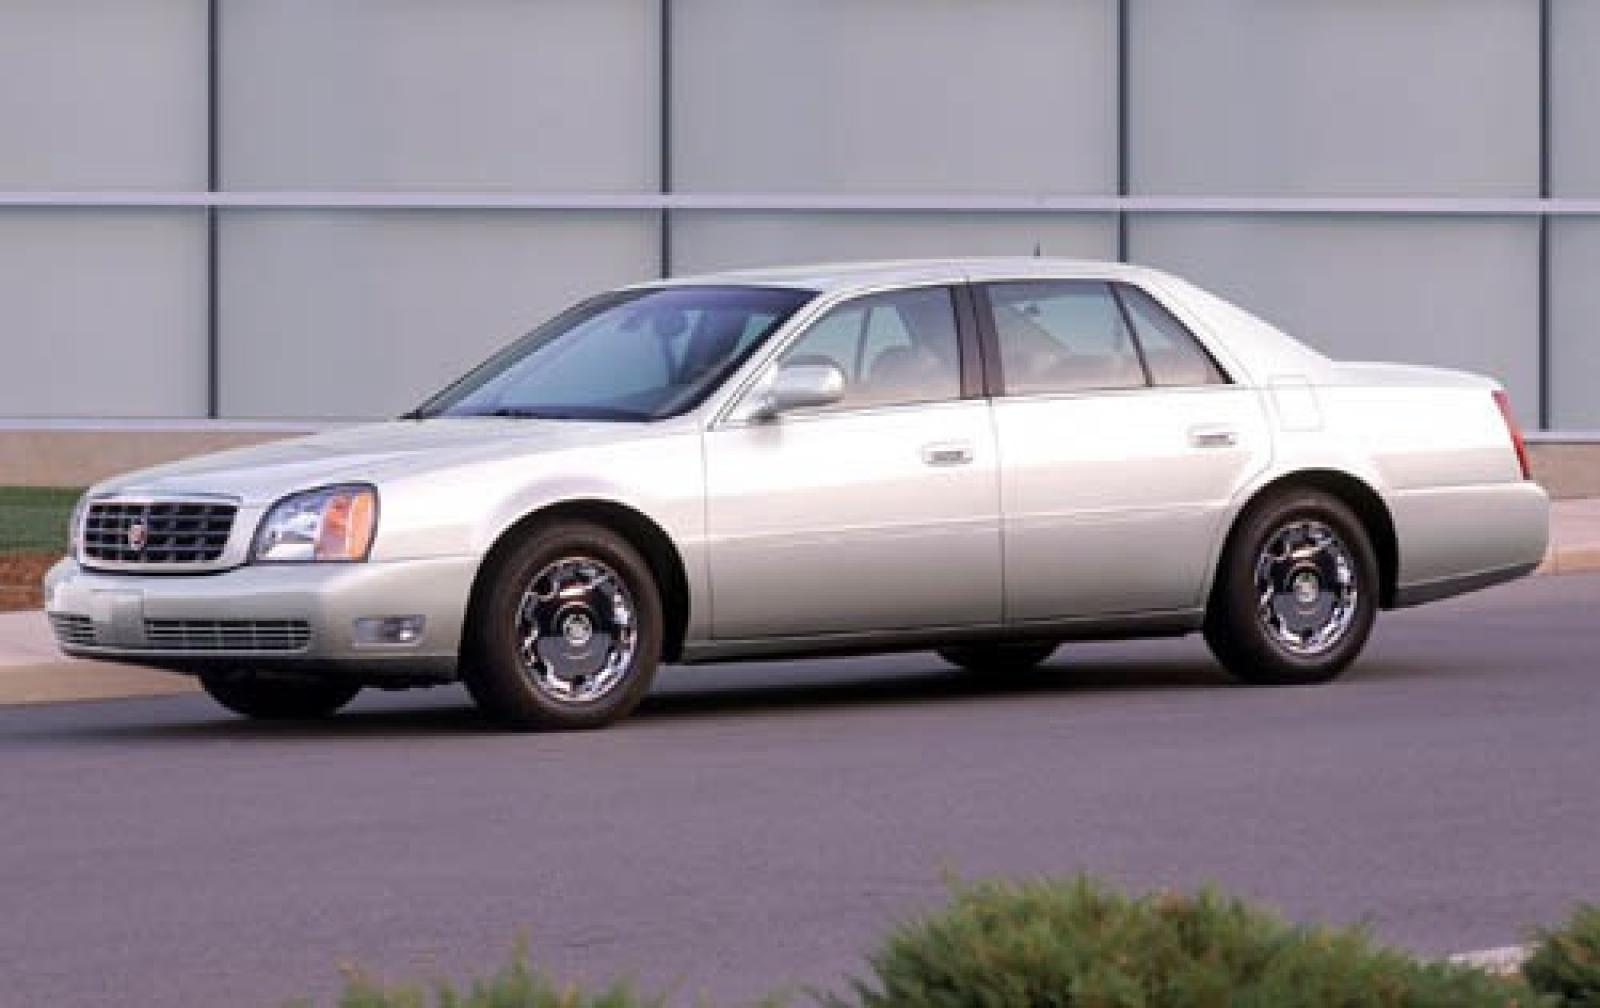 2005 Cadillac Deville Information And Photos Zomb Drive